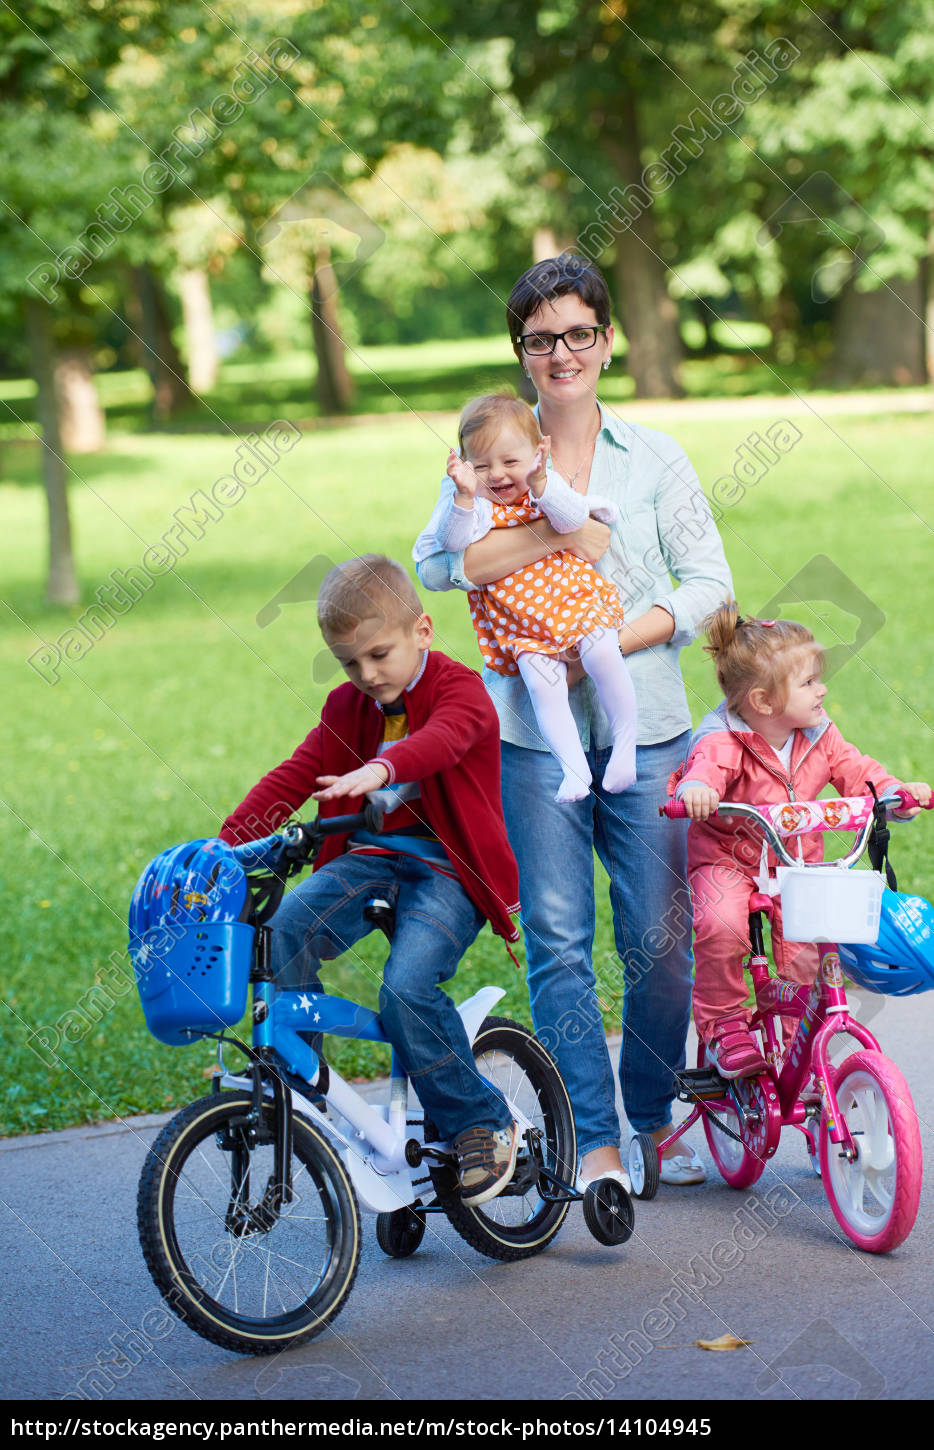 happy, young, family, in, park - 14104945